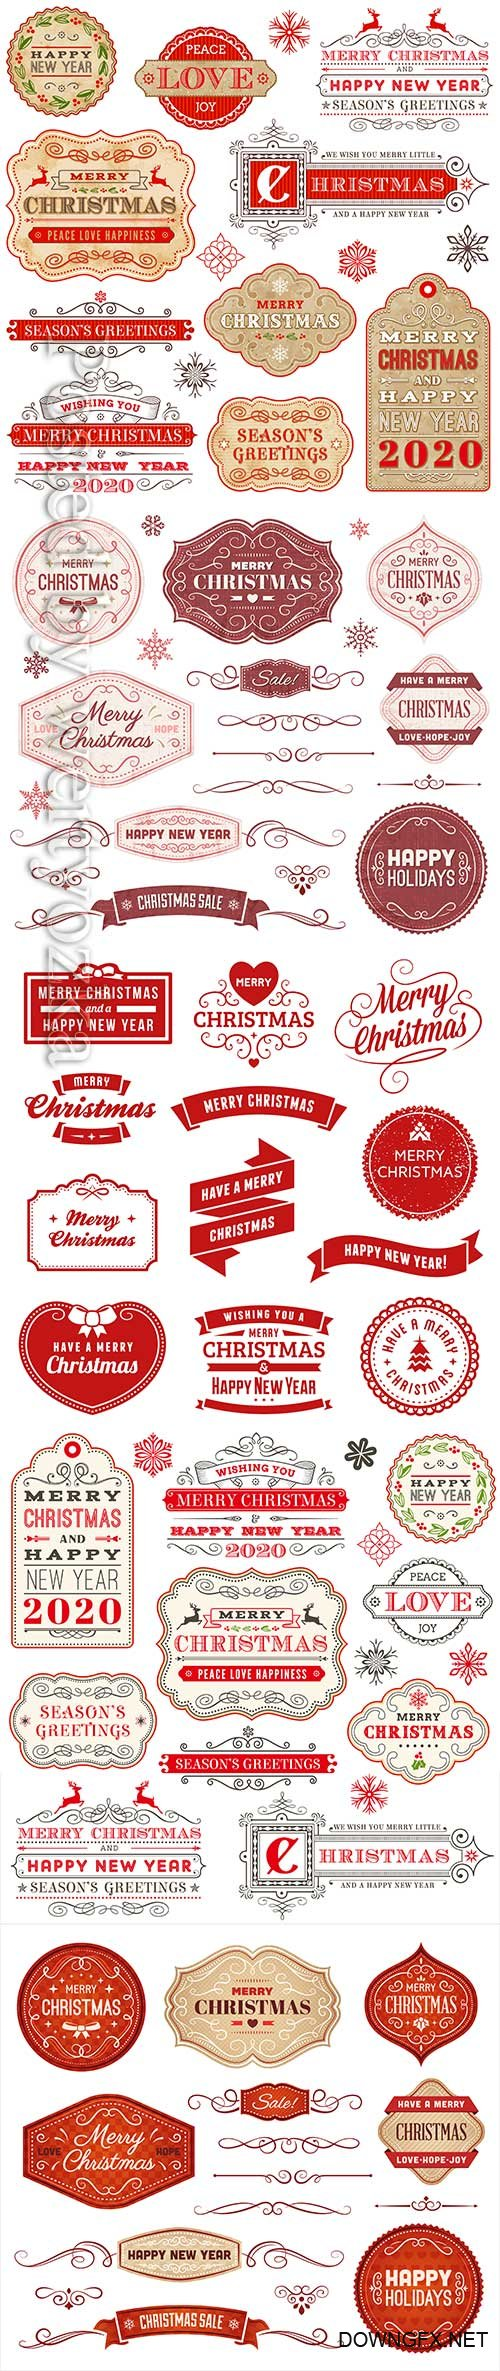 2020 Merry Chistmas and Happy New Year vector illustration # 15